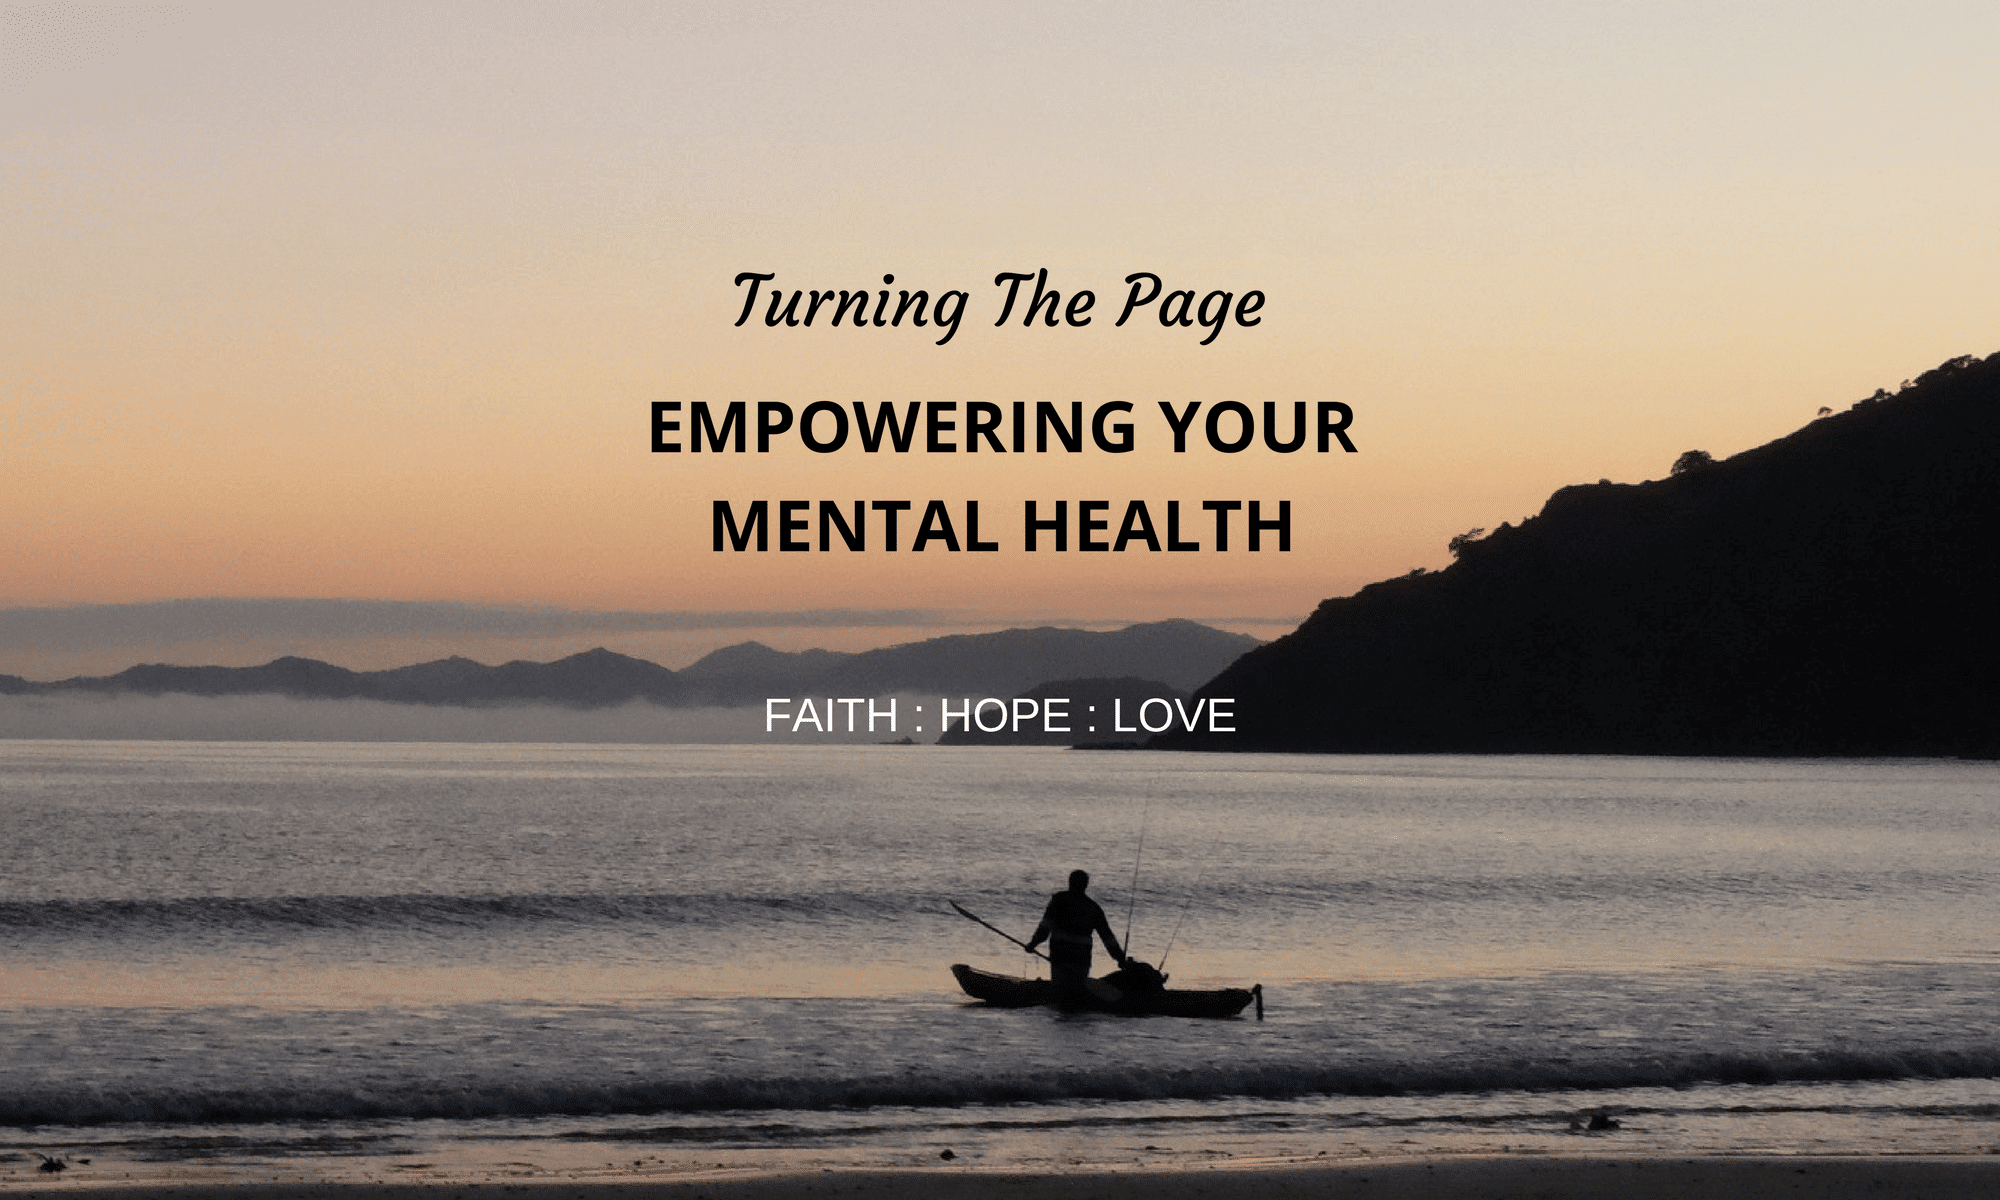 Turning the Page | Empowering Your Mental Health Faith: Hope: Love